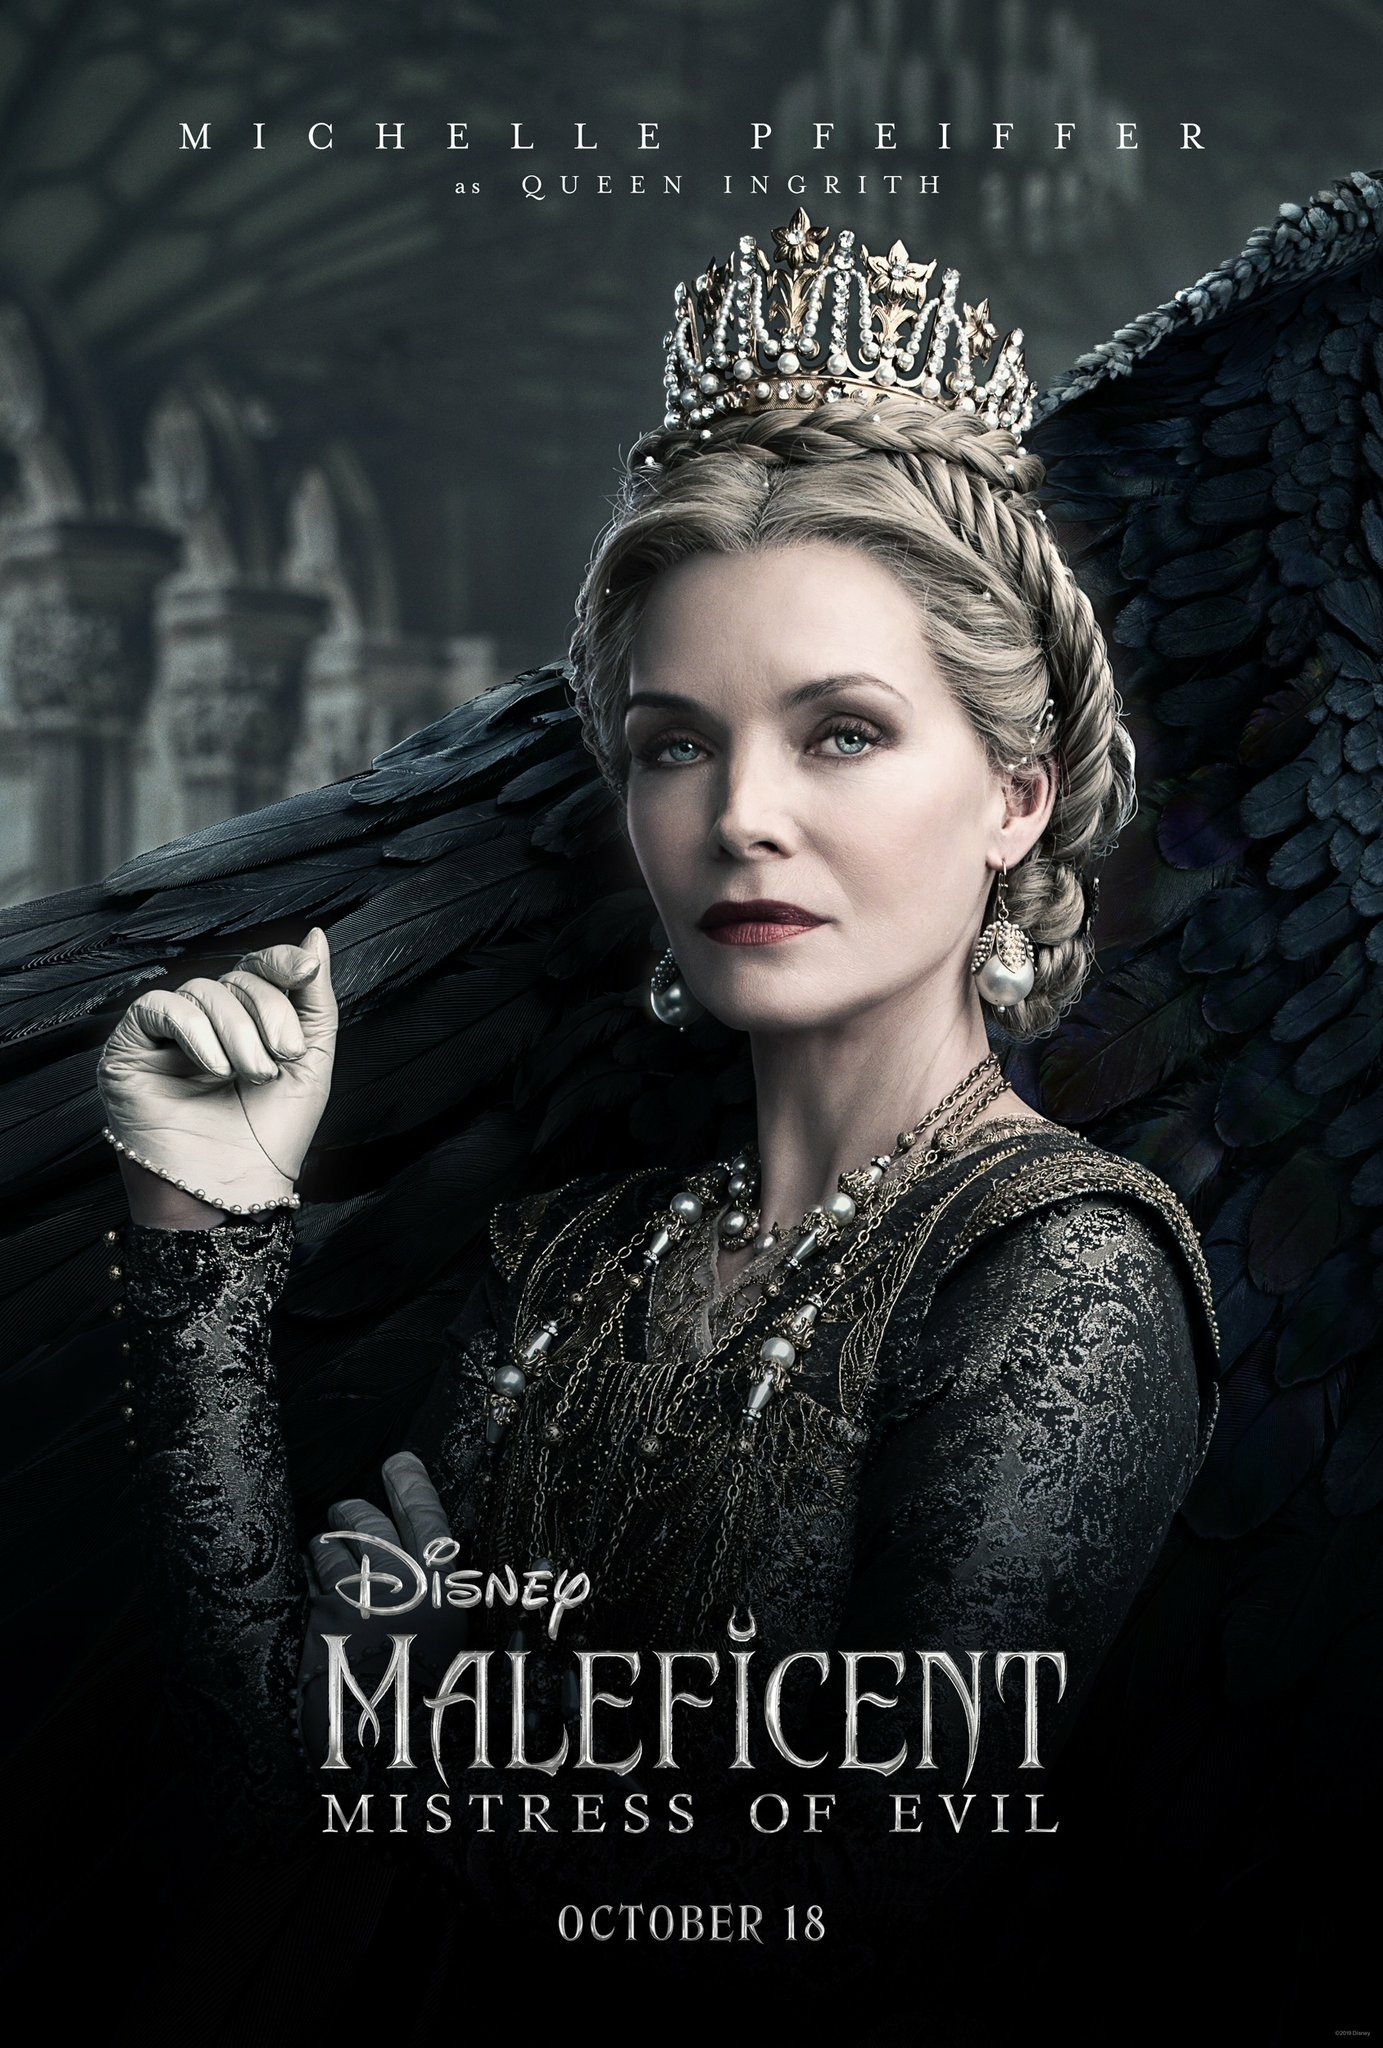 Maleficent Mistress of Evil Character Posters Michelle Pfeiffer as Queen Ingrith